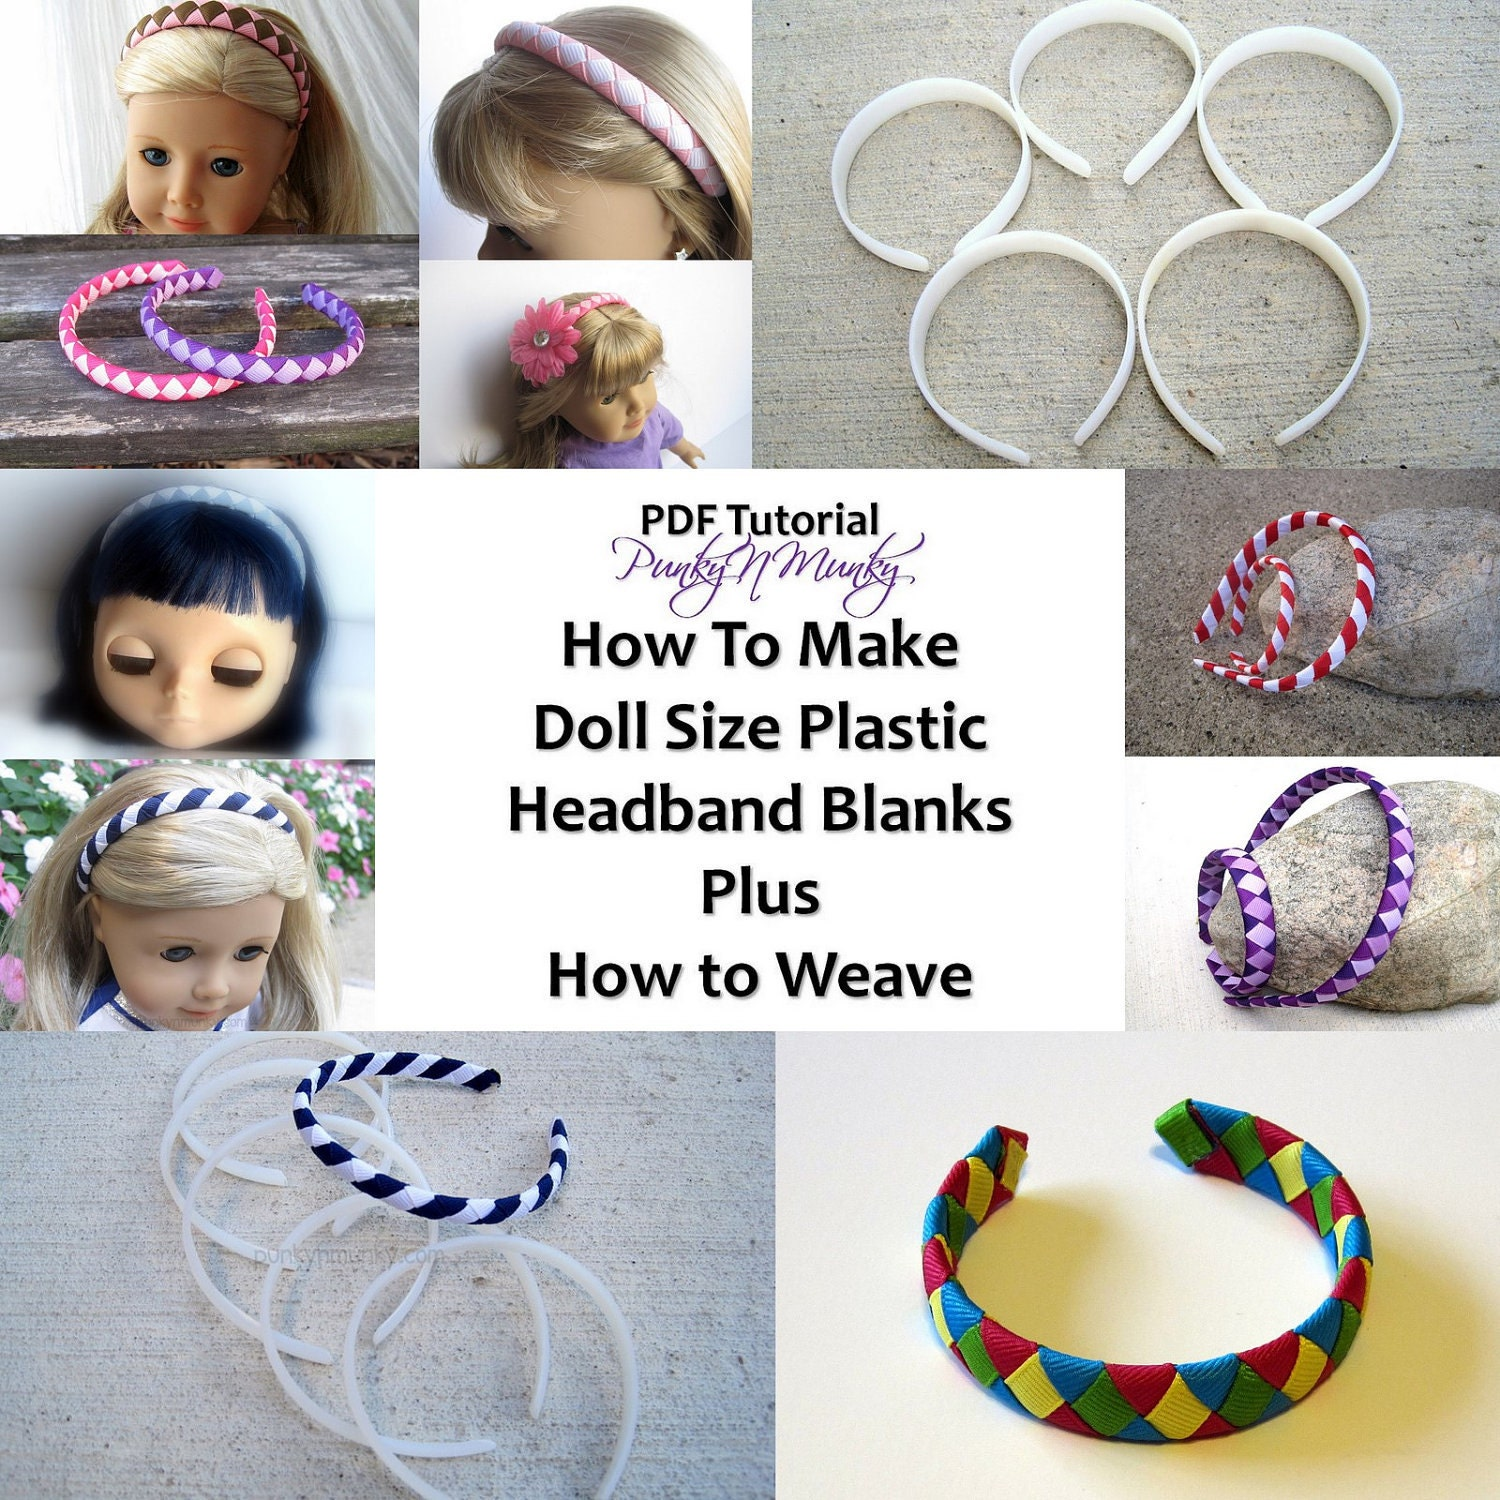 Plastic headbands for crafts - Like This Item